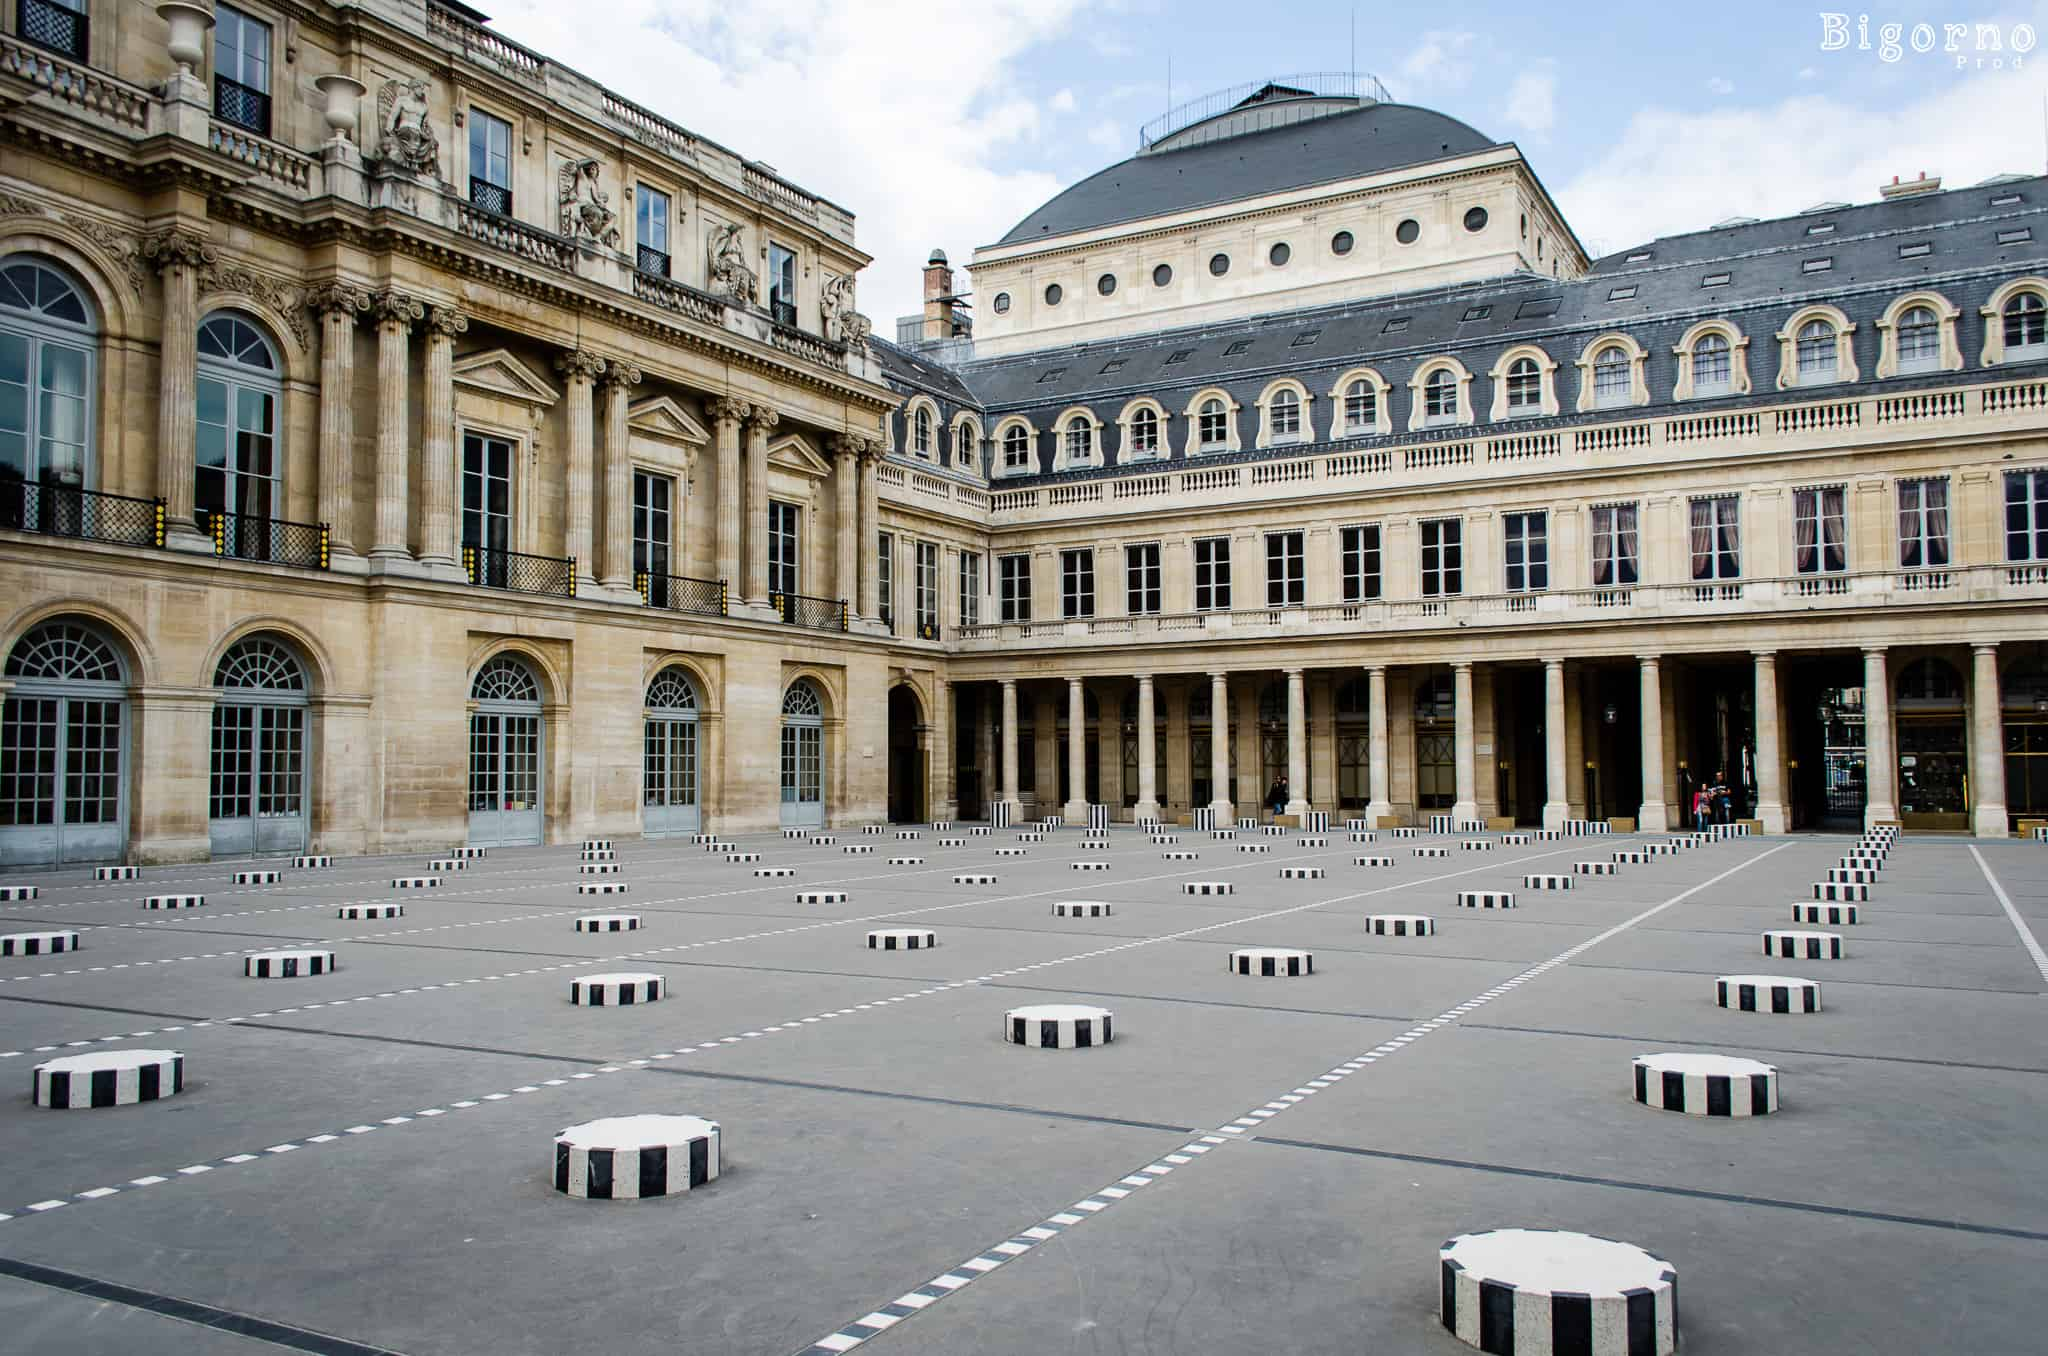 thingstodofrommontmartretothelouvre7